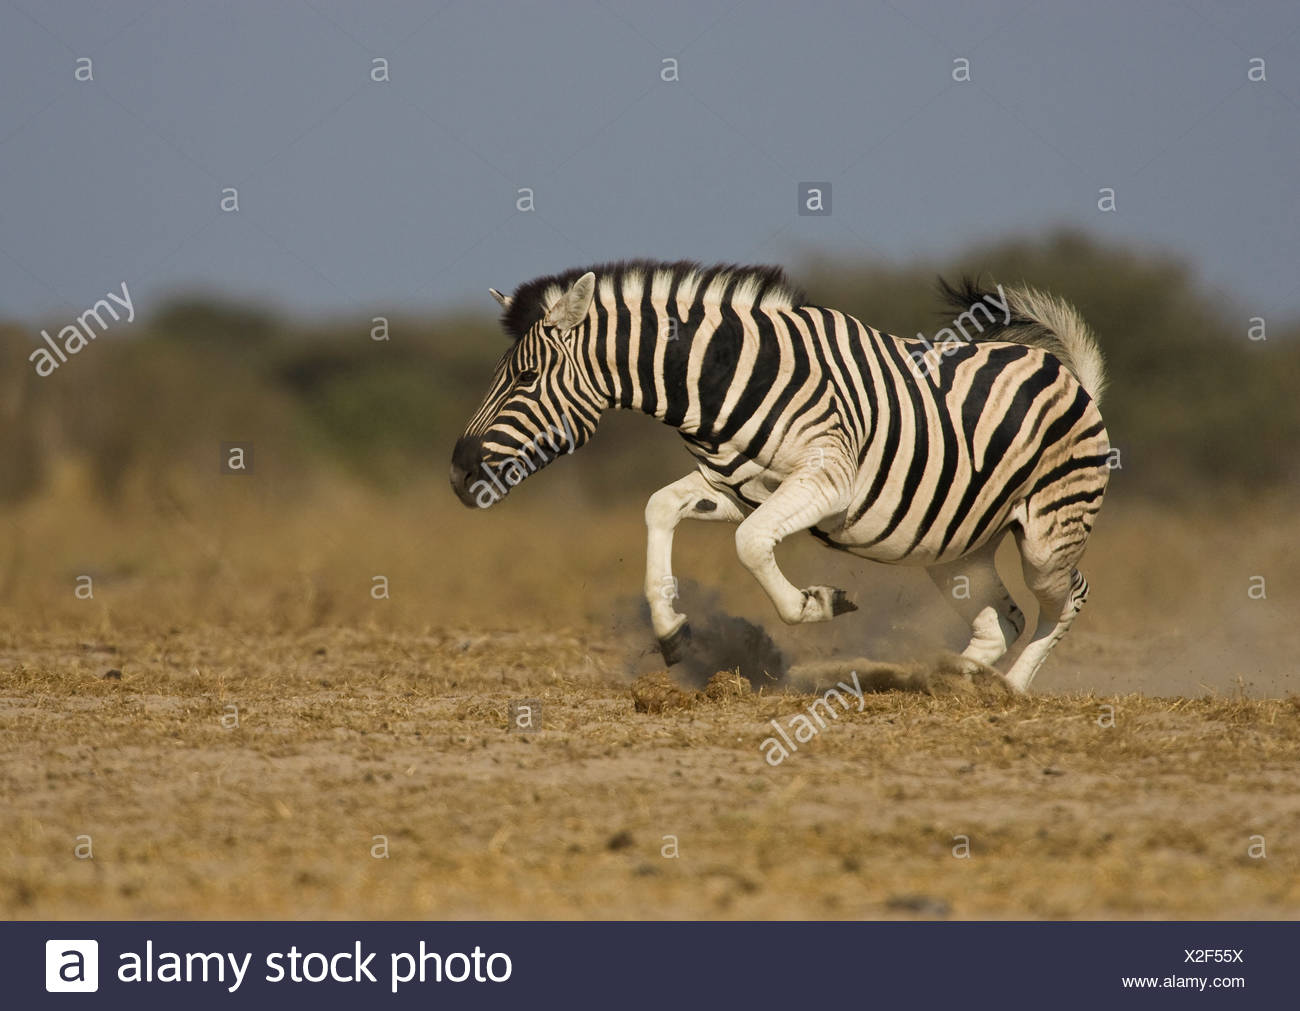 Zebra displaying, Etosha National Park, Namibia. - Stock Image